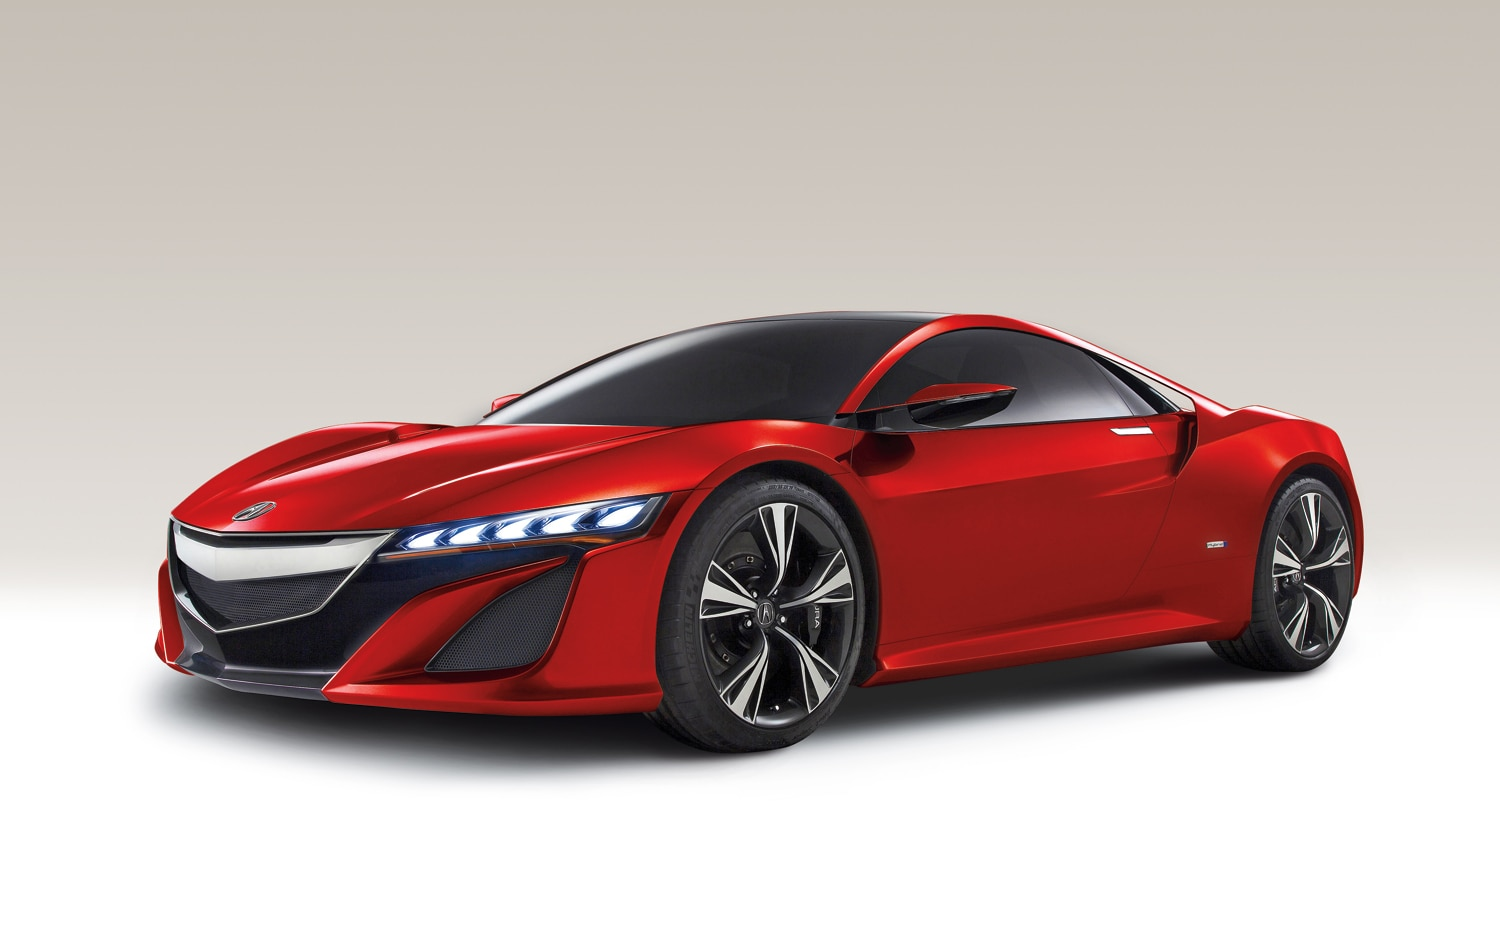 2015 Acura NSX Front Three Quarter1